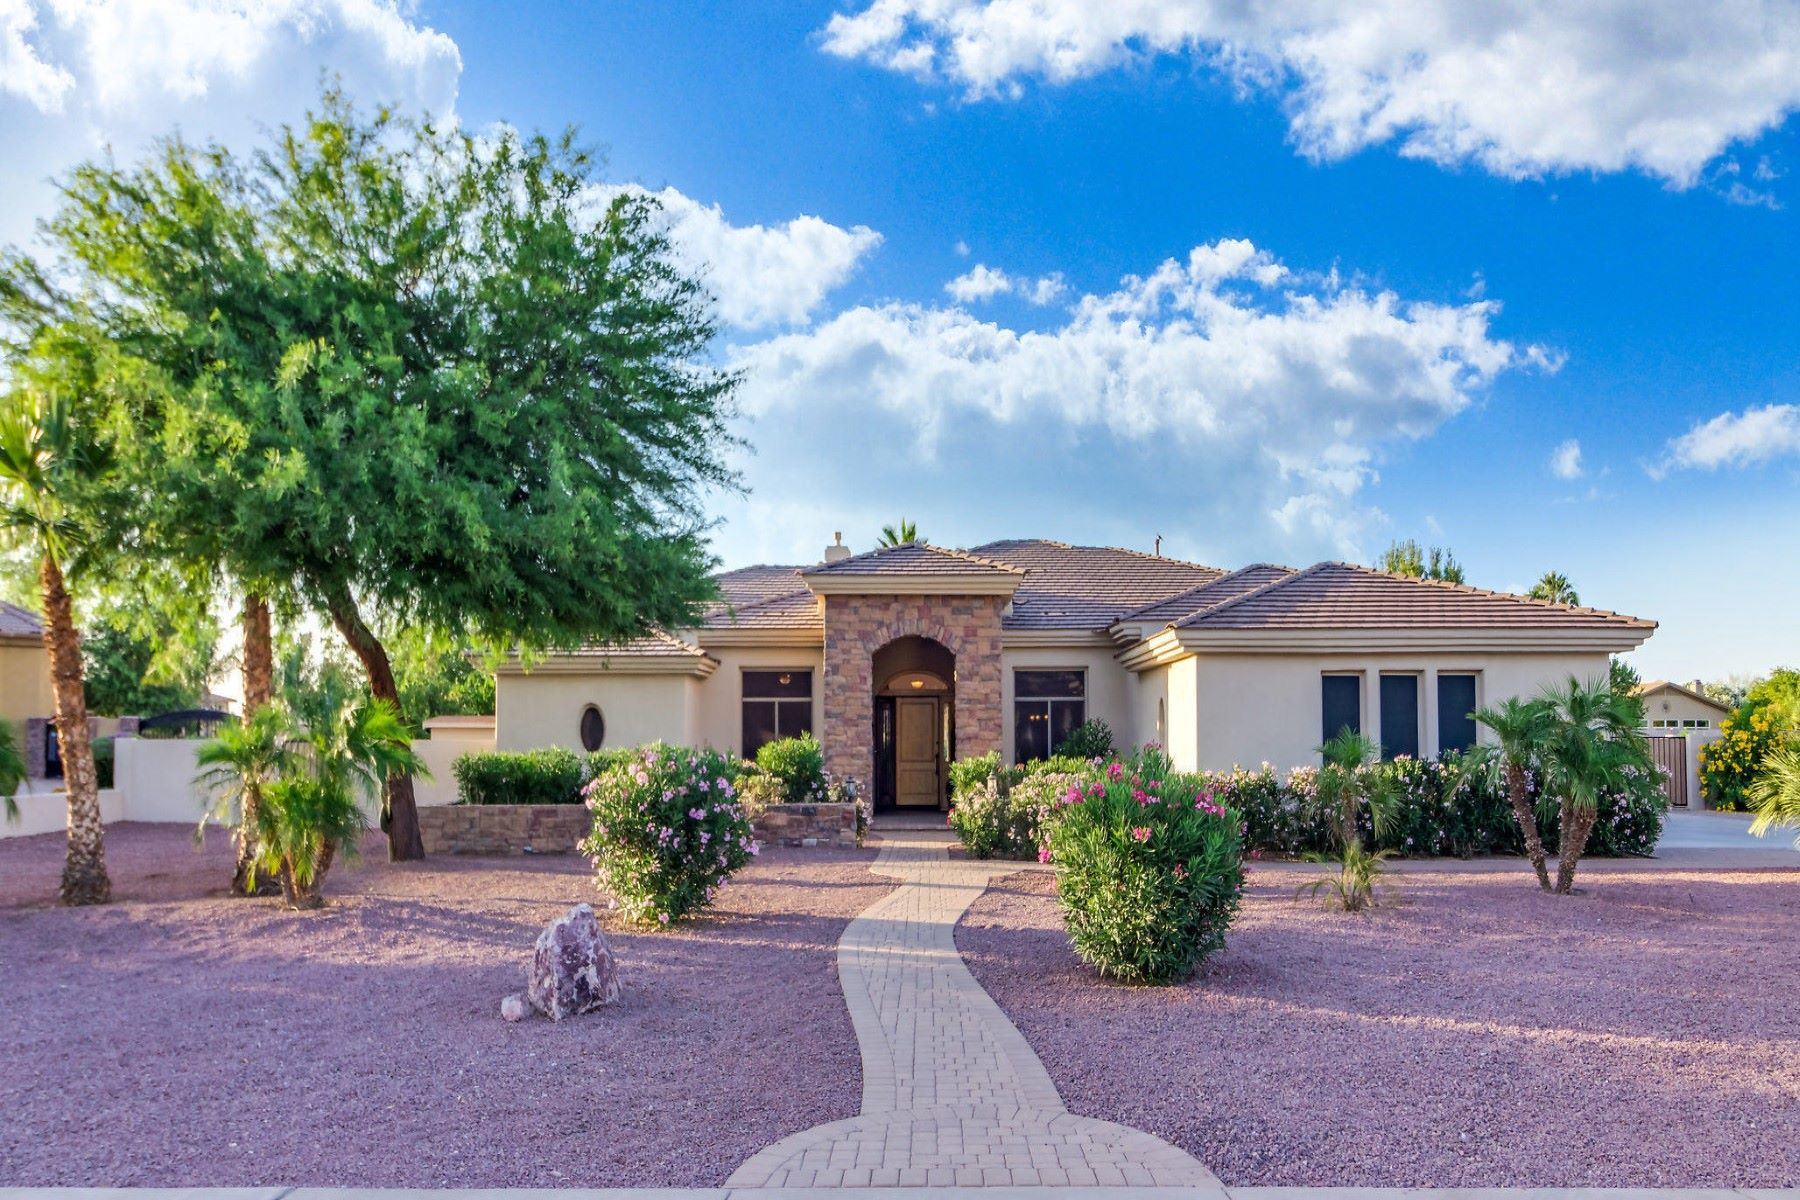 Single Family Homes for Sale at Lines Family Estates 2738 E LINES LN Gilbert, Arizona 85297 United States